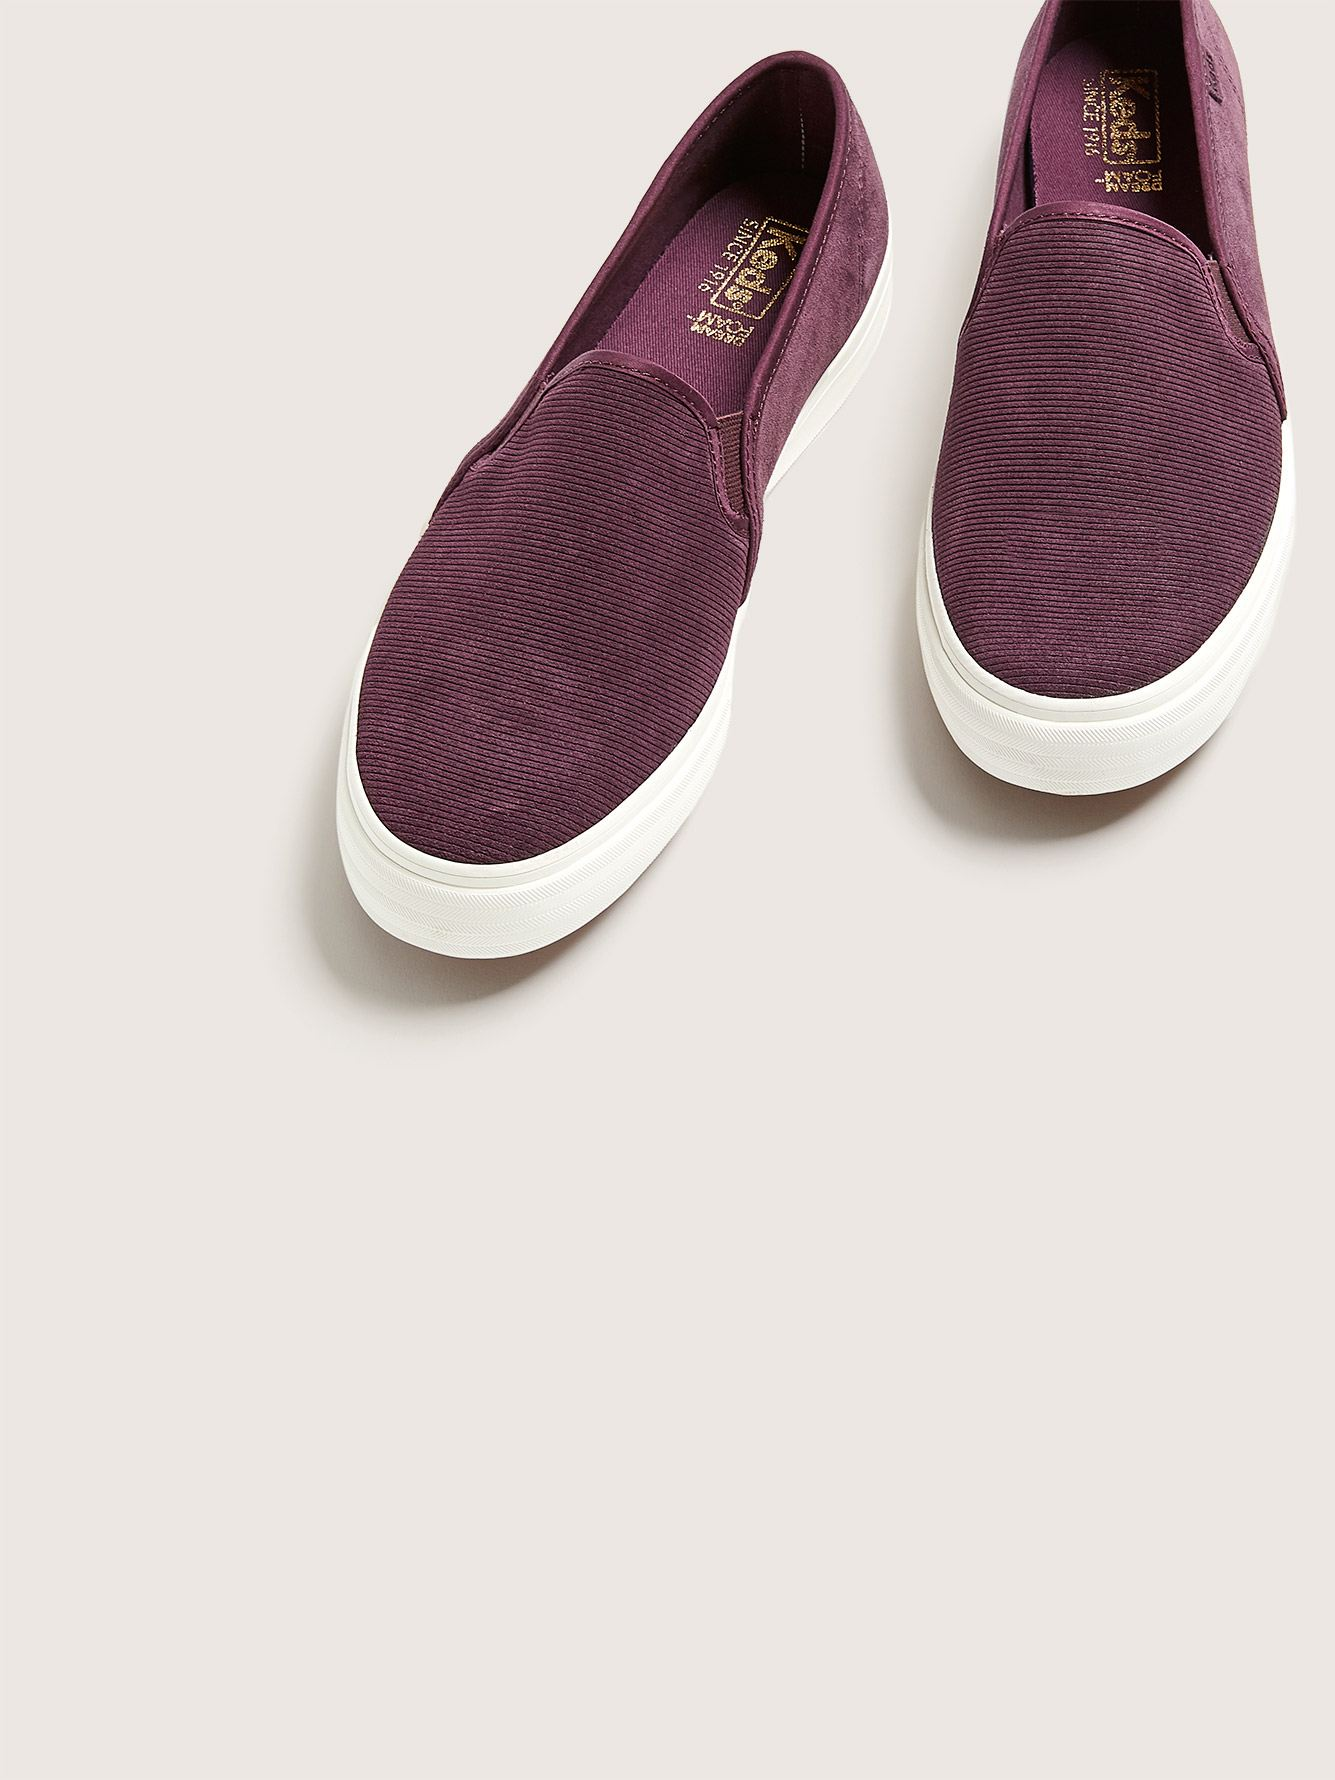 Wide Width Slip On Double Decker Sneakers - Keds